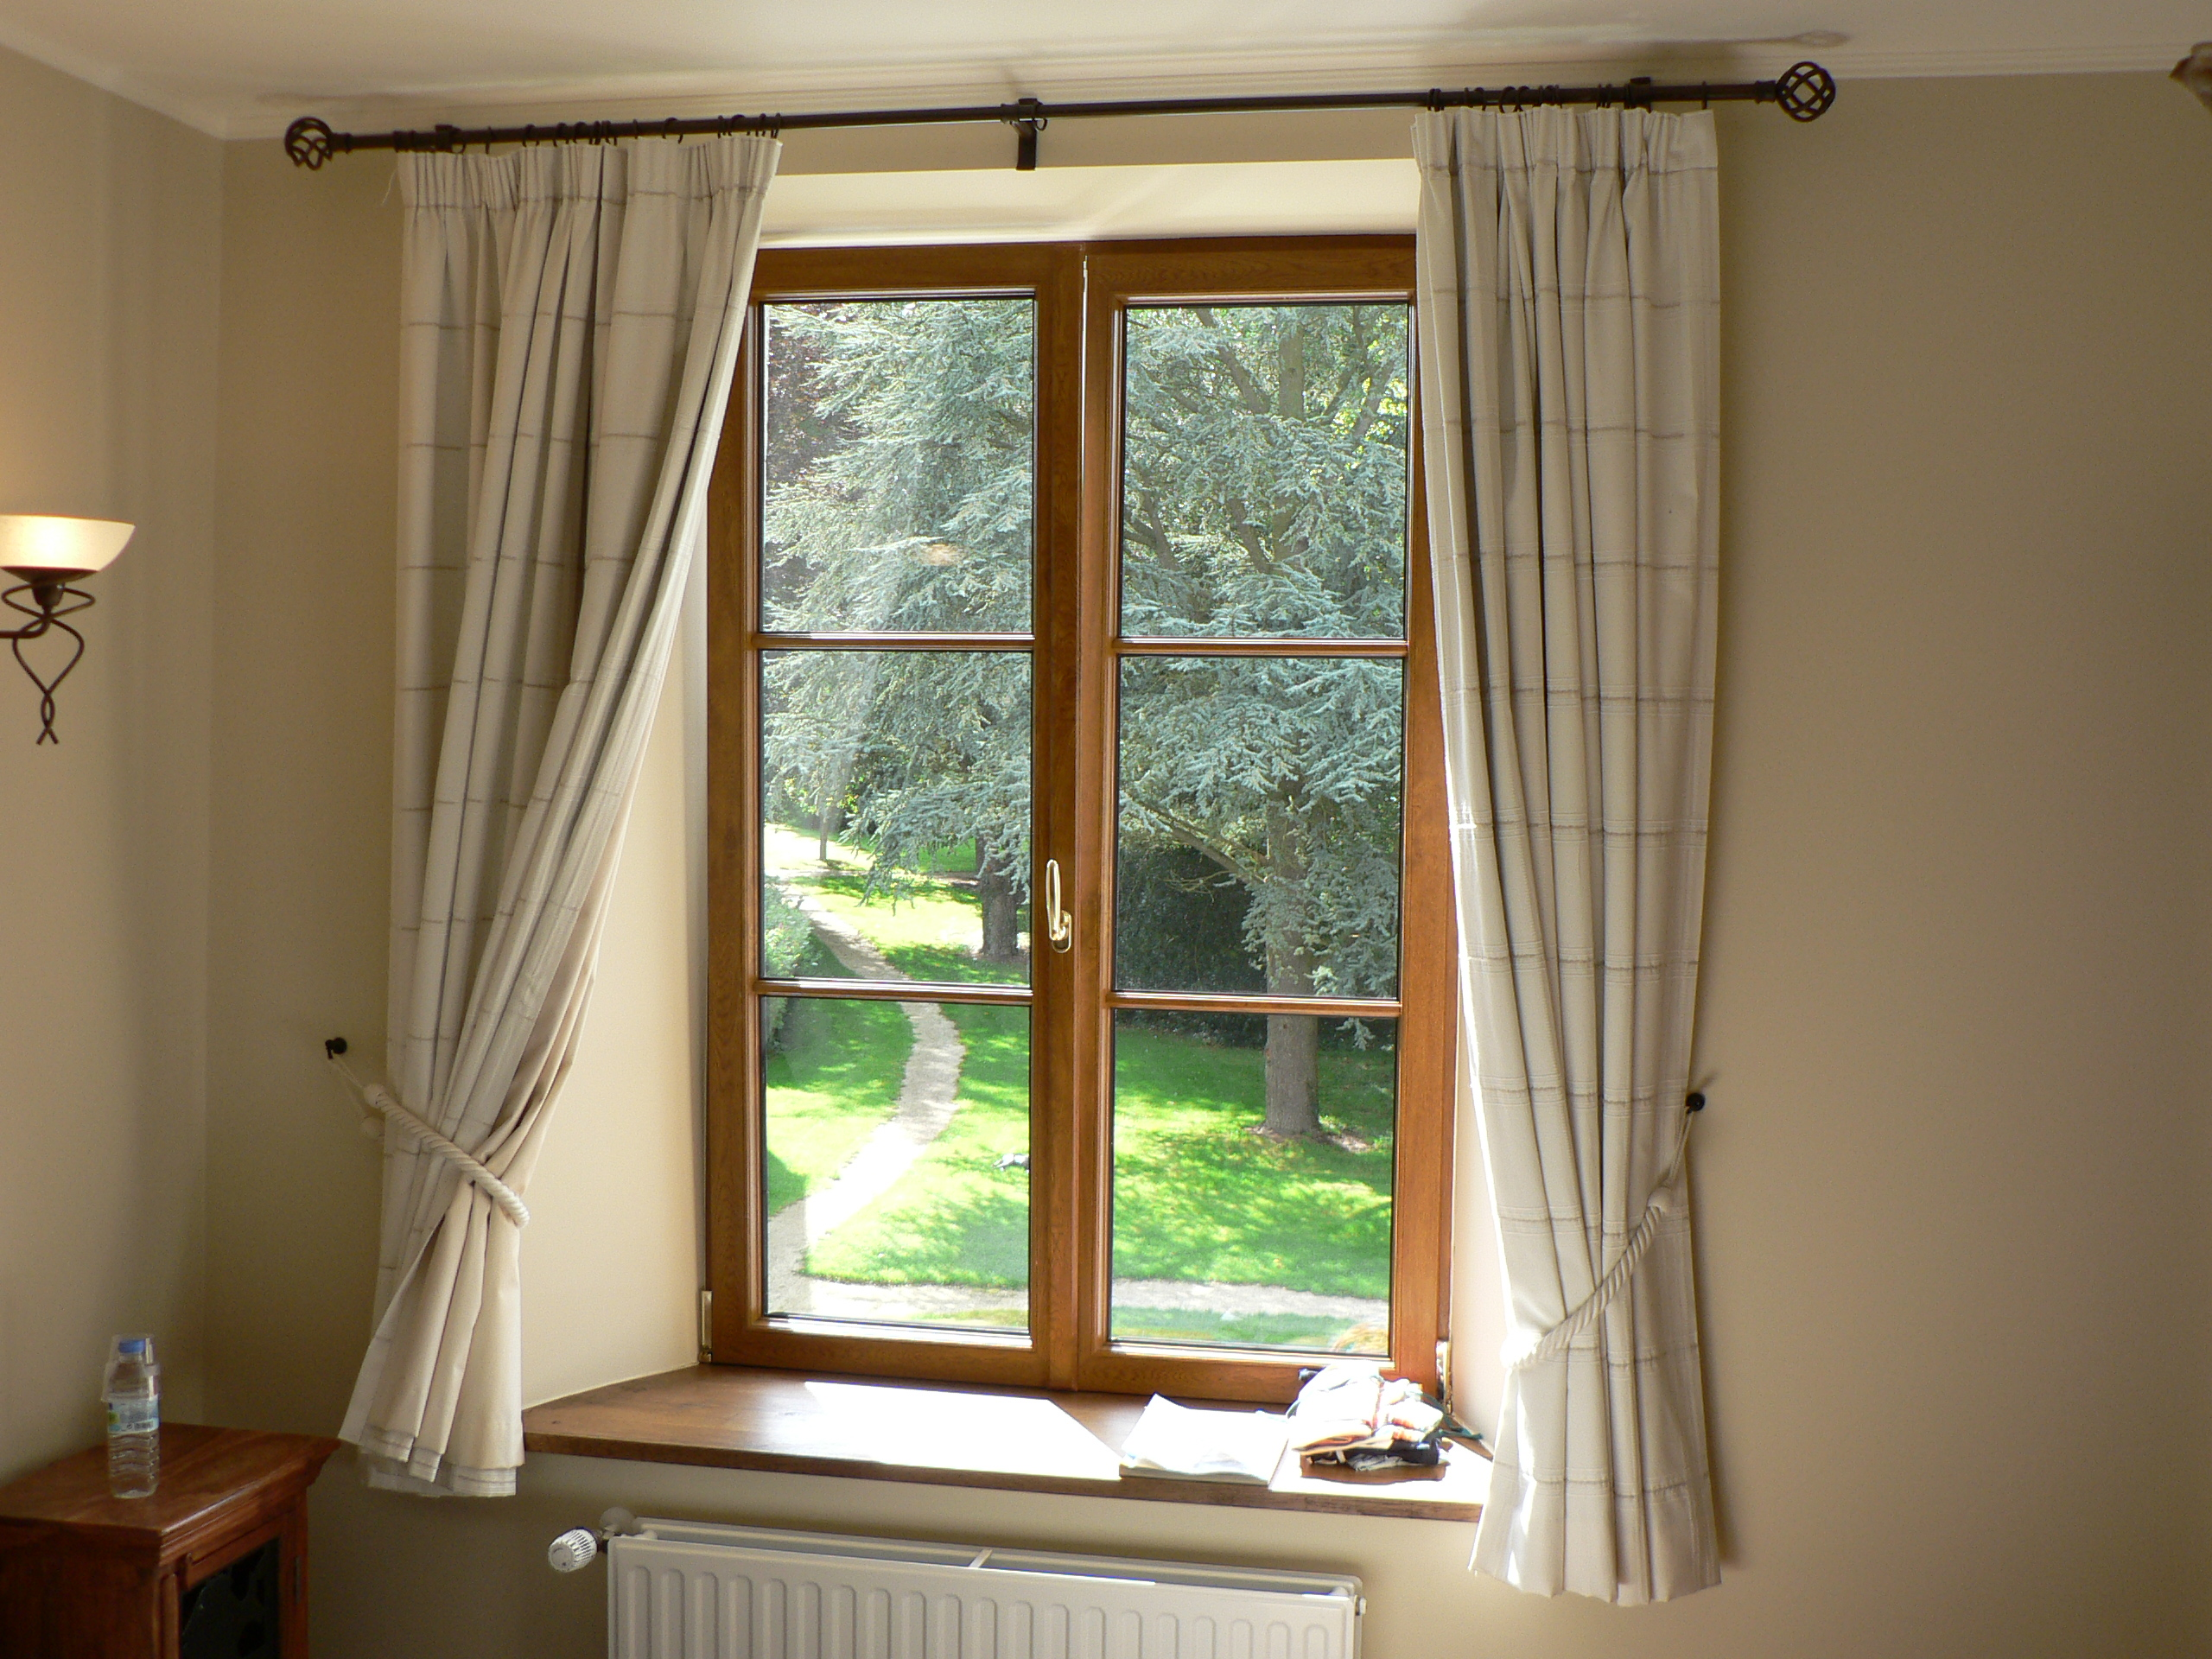 Is your window letting in more than just visible light?